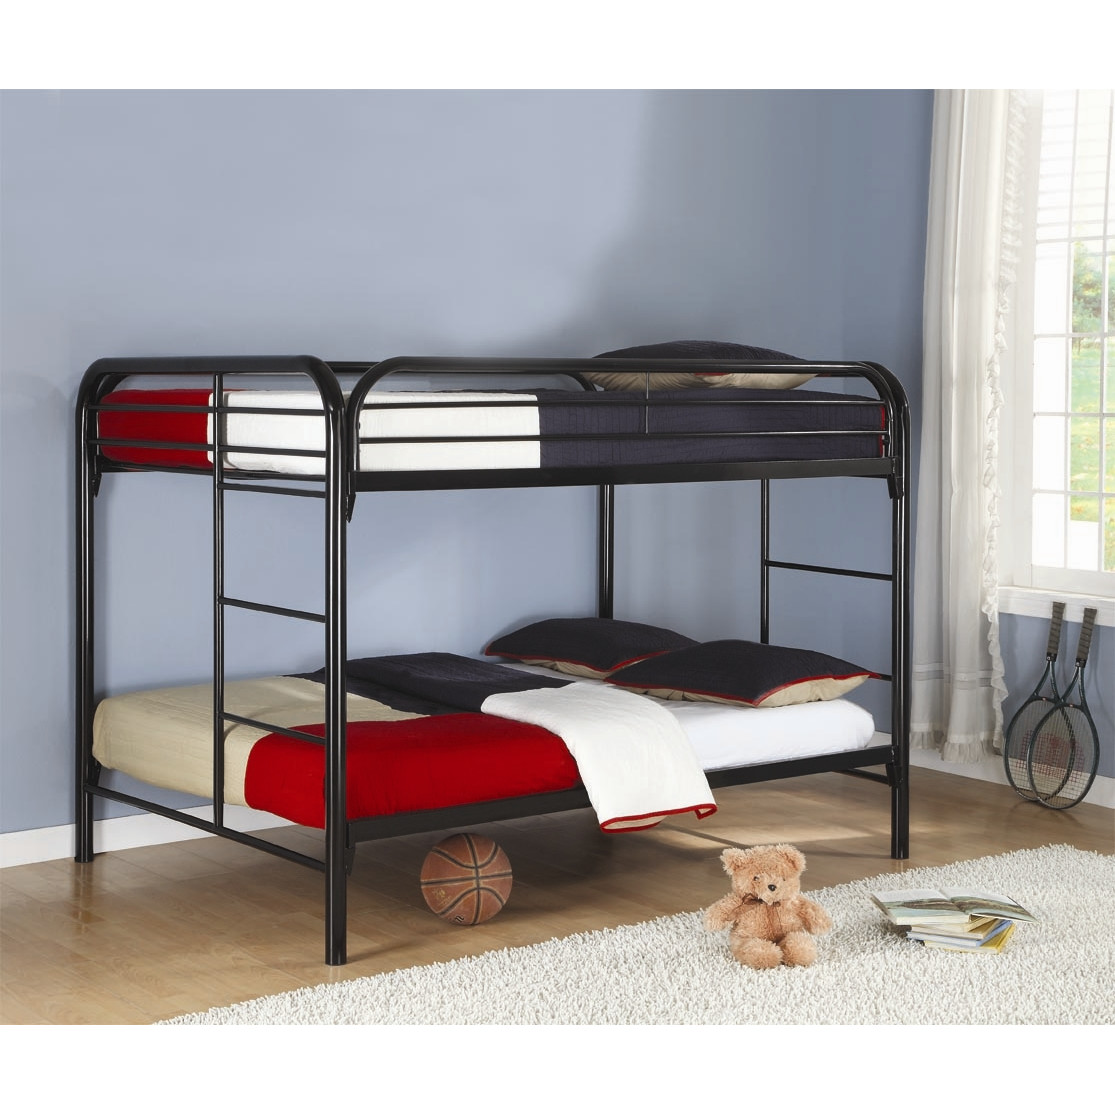 Sturdy bunk beds for adults homesfeed Black bunk beds